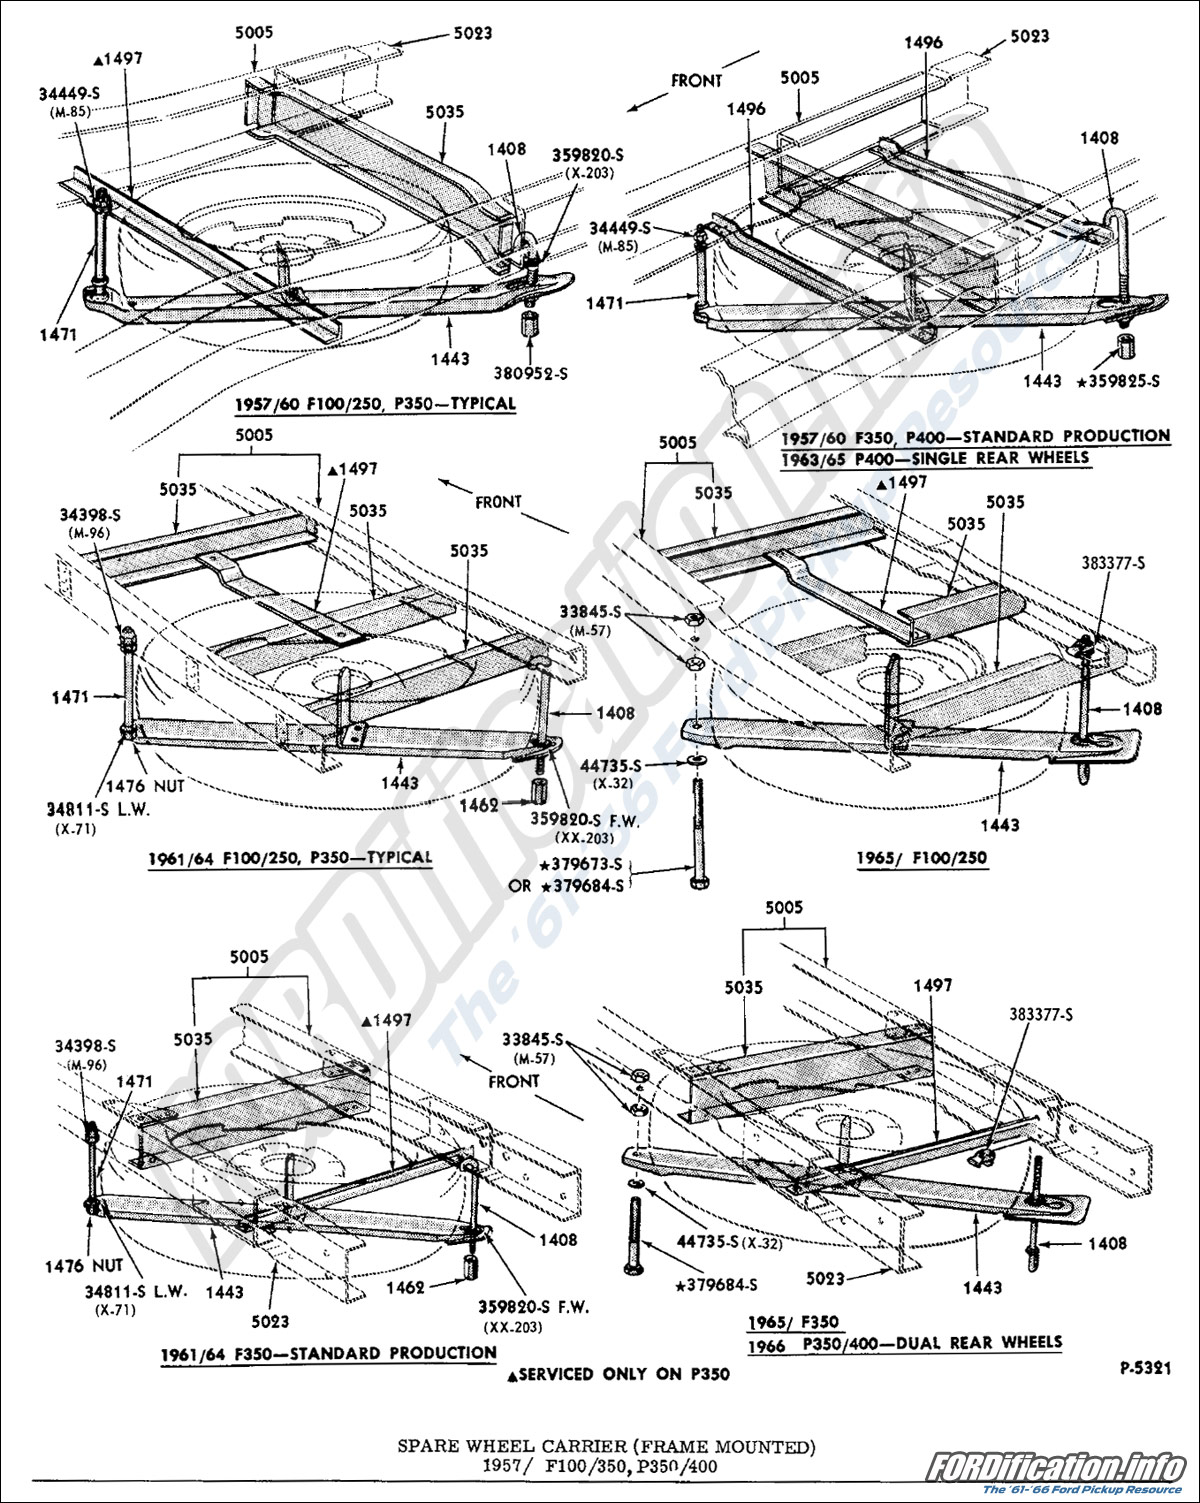 frame & body schematics fordification info the '61 '66 ford F350 Frame Diagram spare wheel carrier (frame mounted) 1957 f100 350, p350 400, ' Ford Ranger Replacement Frame